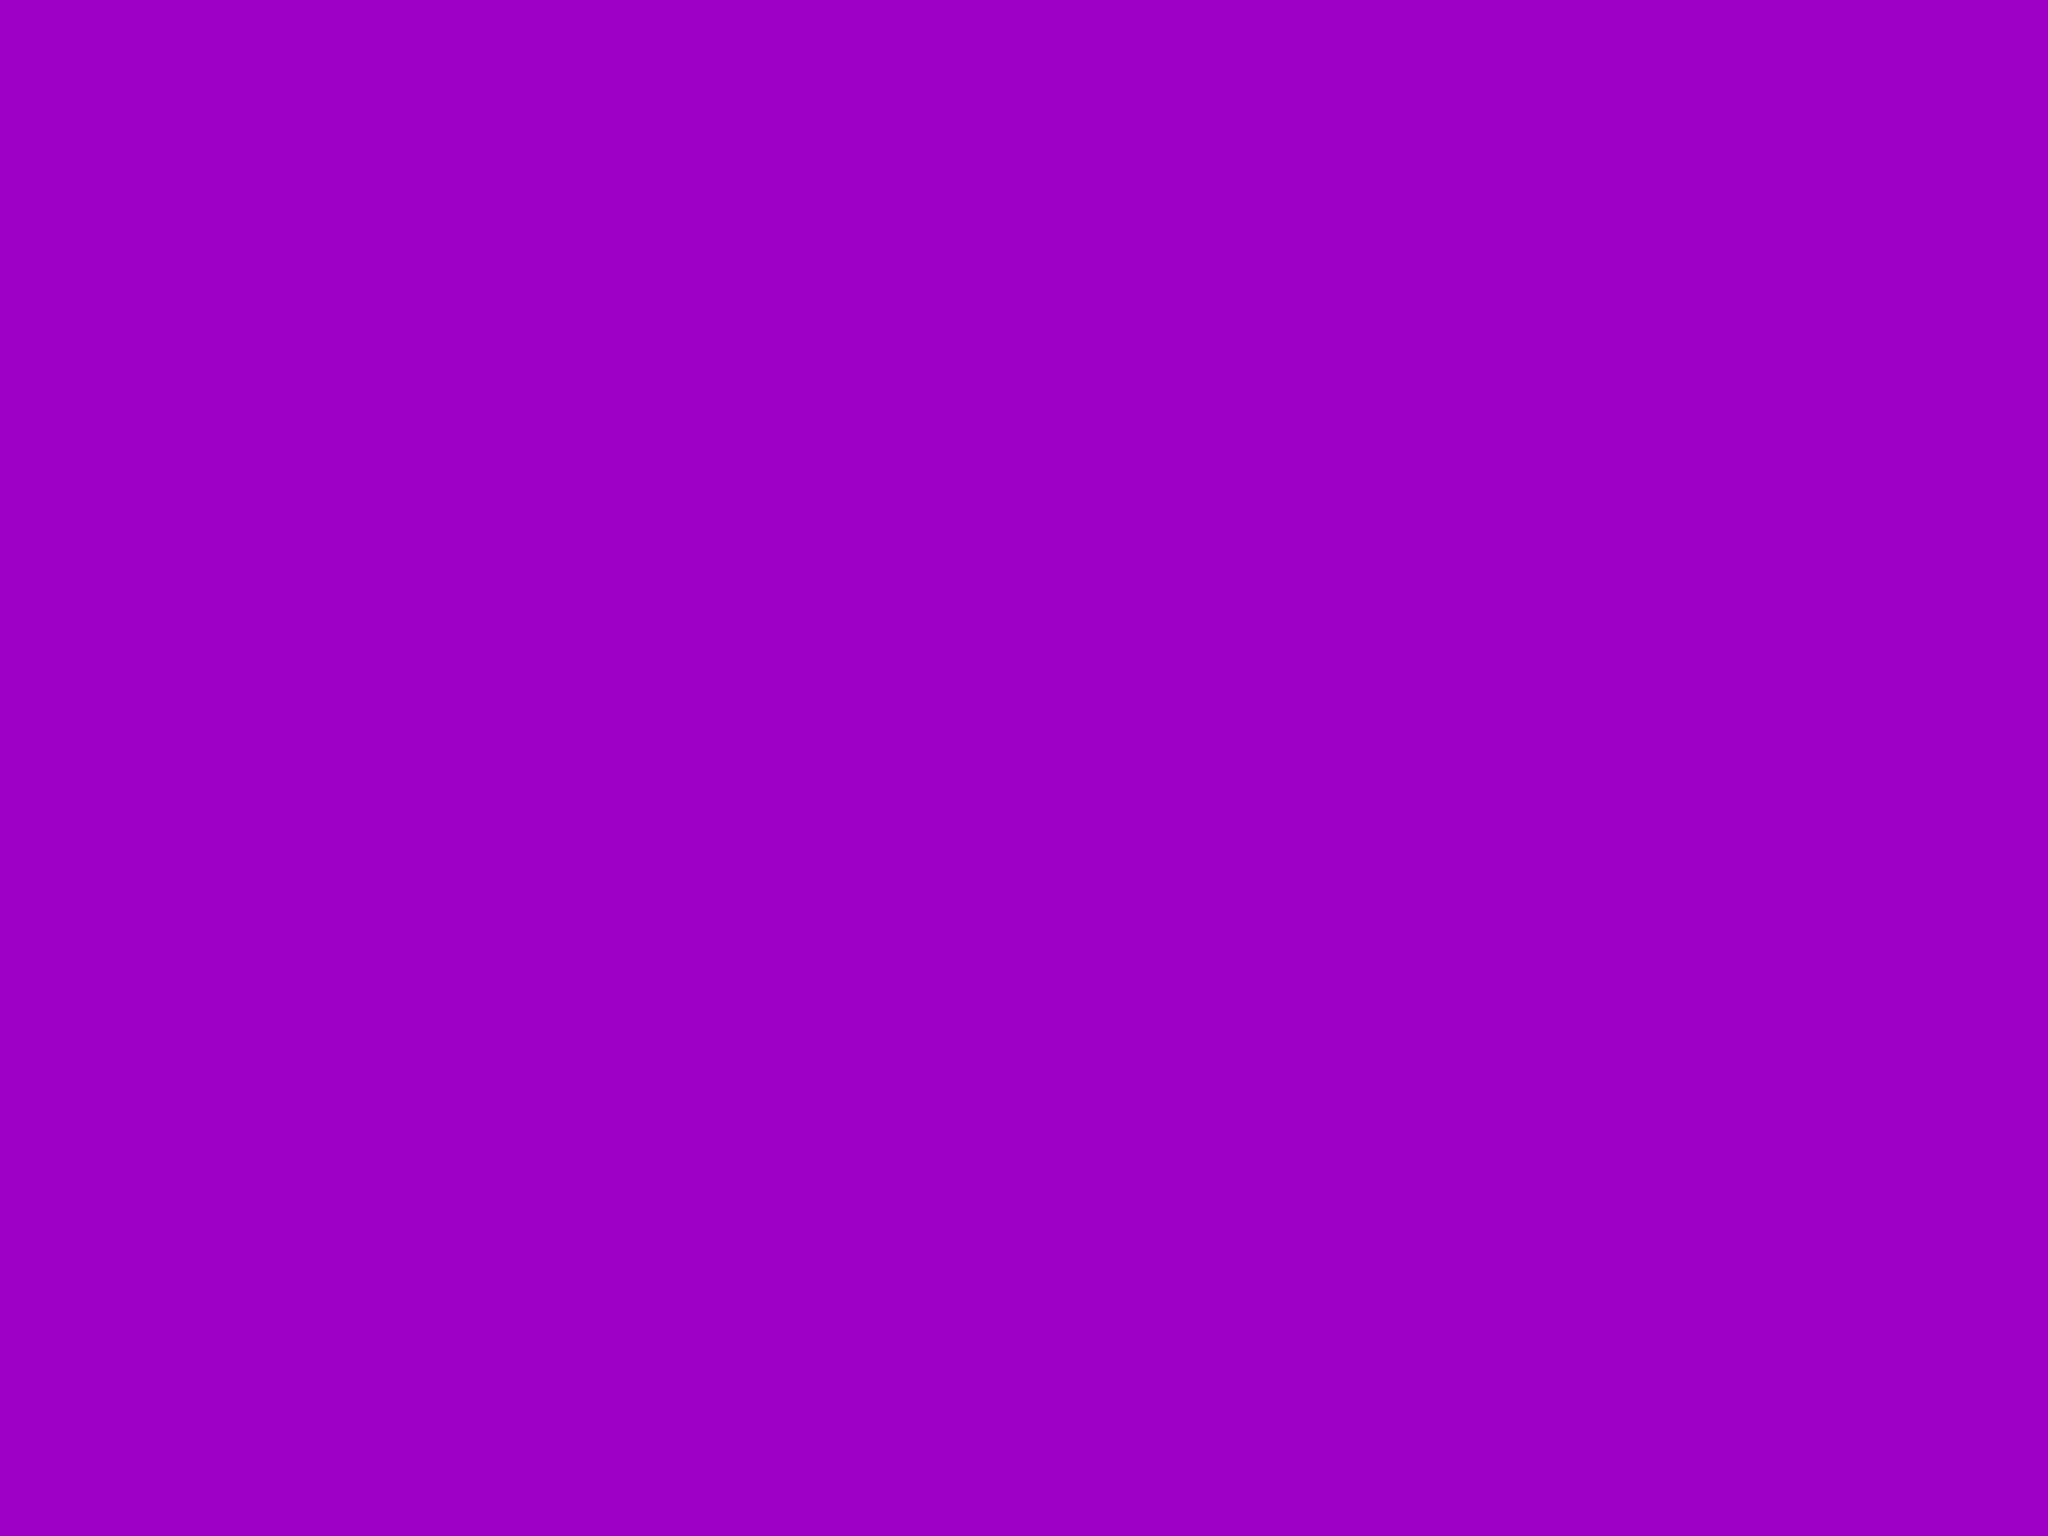 2048x1536 Purple Munsell Solid Color Background